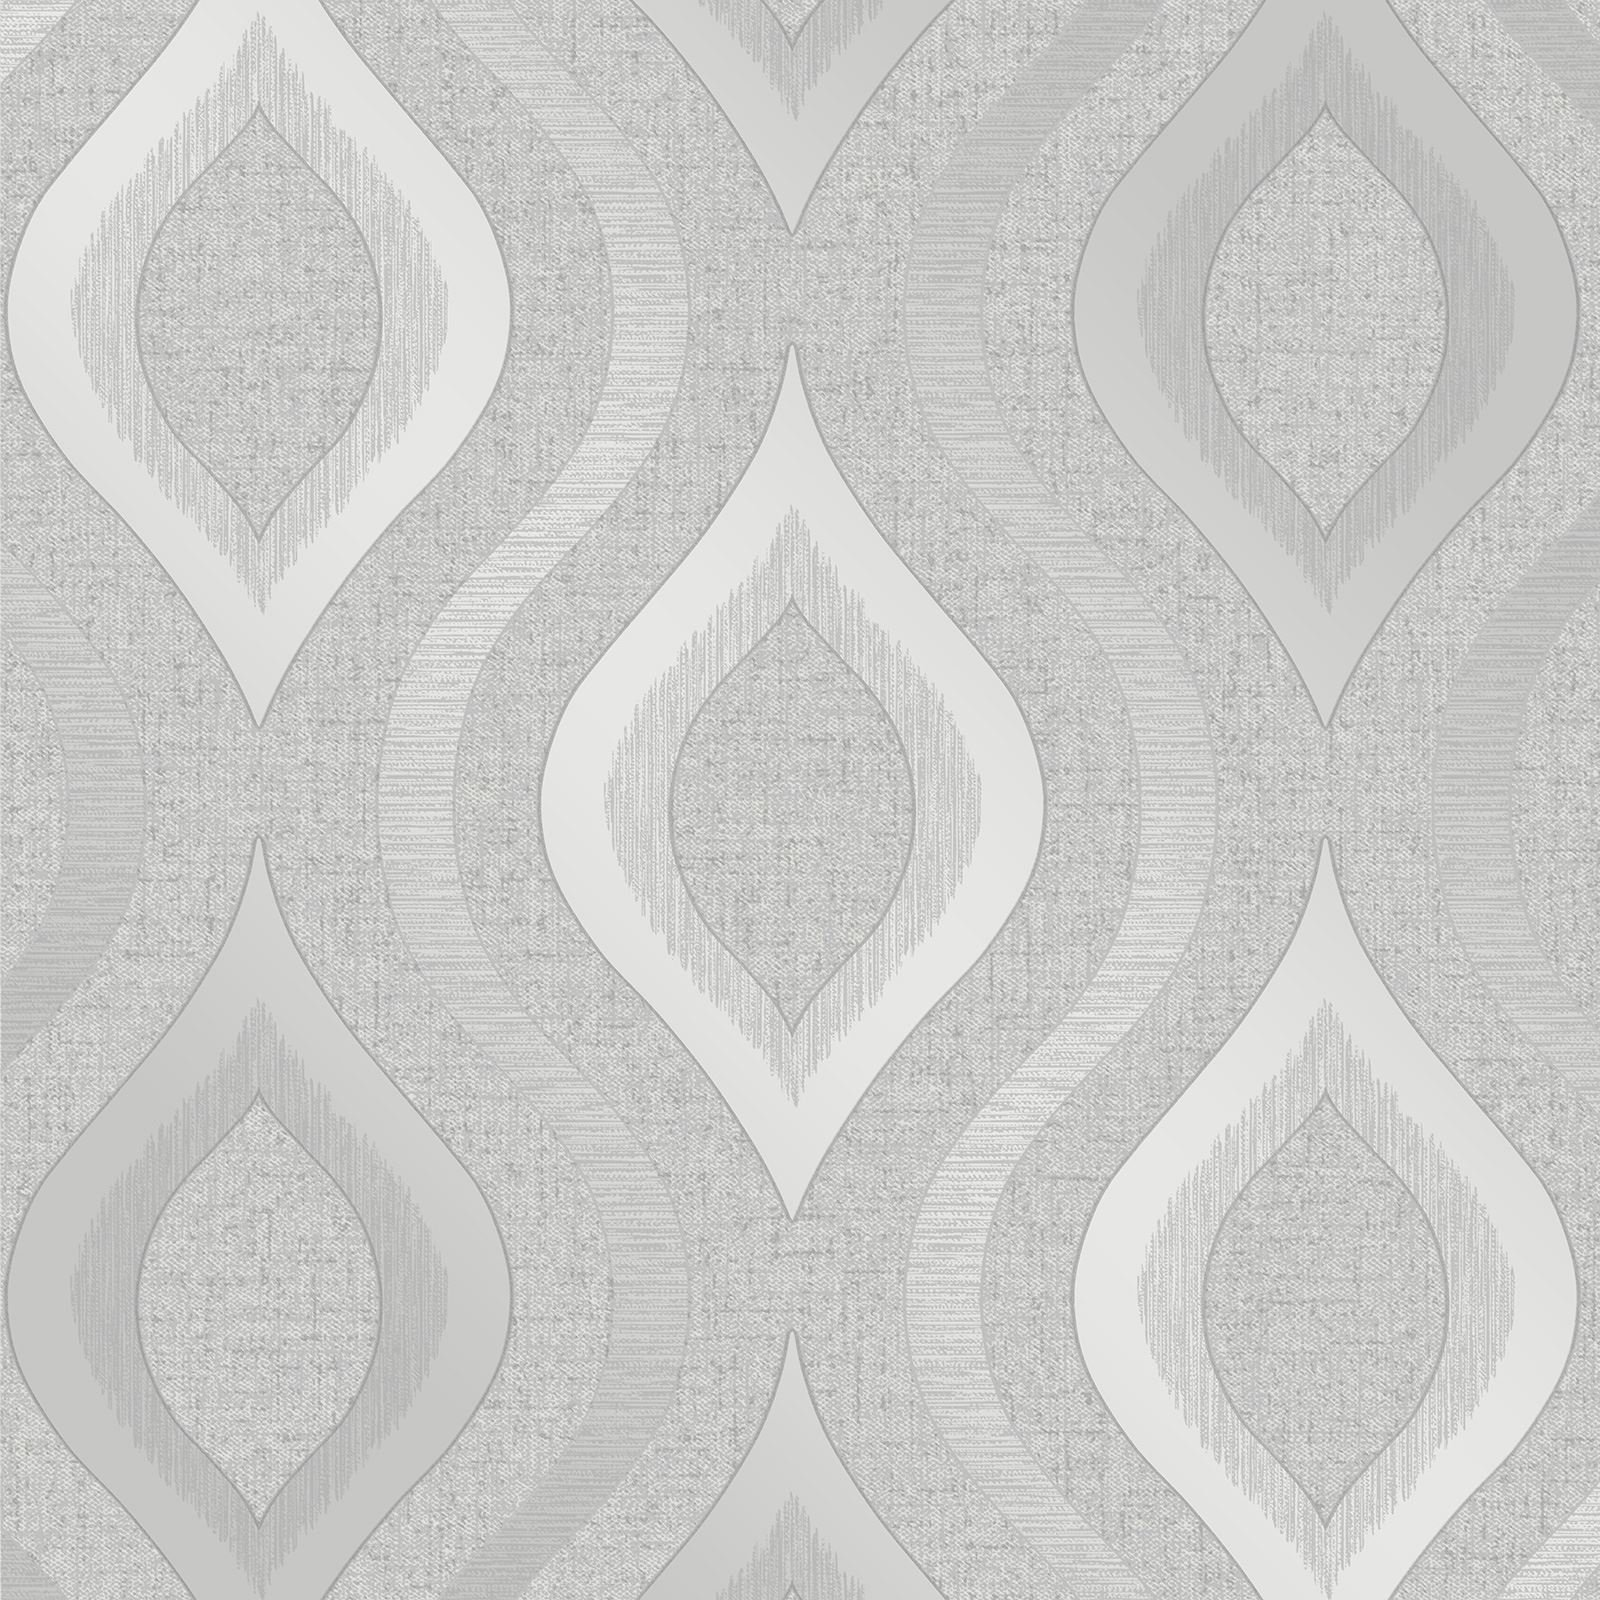 Quartz Geometric Wallpaper Silver Fine Decor FD41968